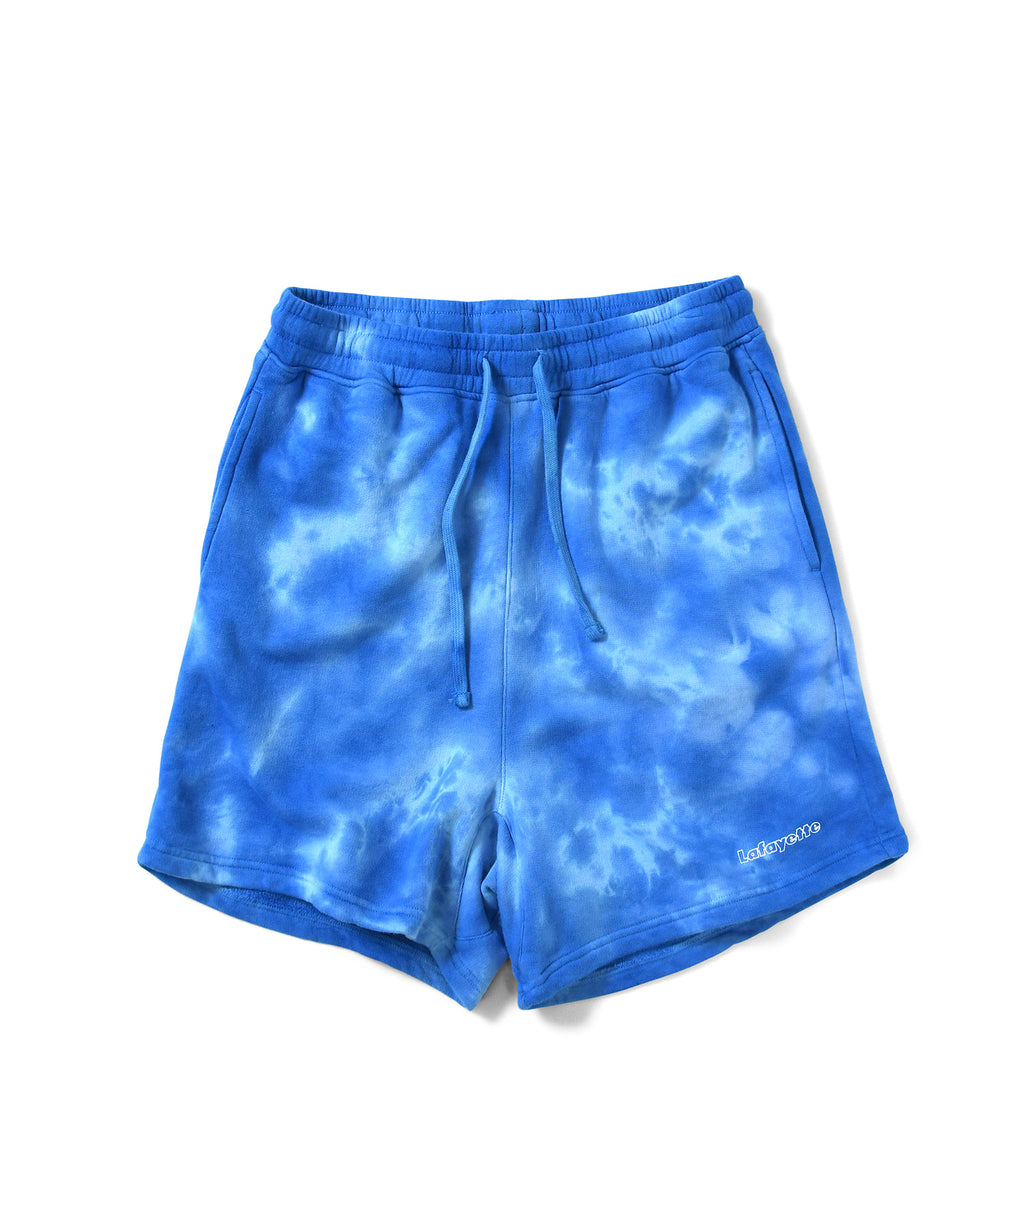 Lafayette OUTLINE LOGO TIE DYED SWEAT SHORTS LS201305 BLUE